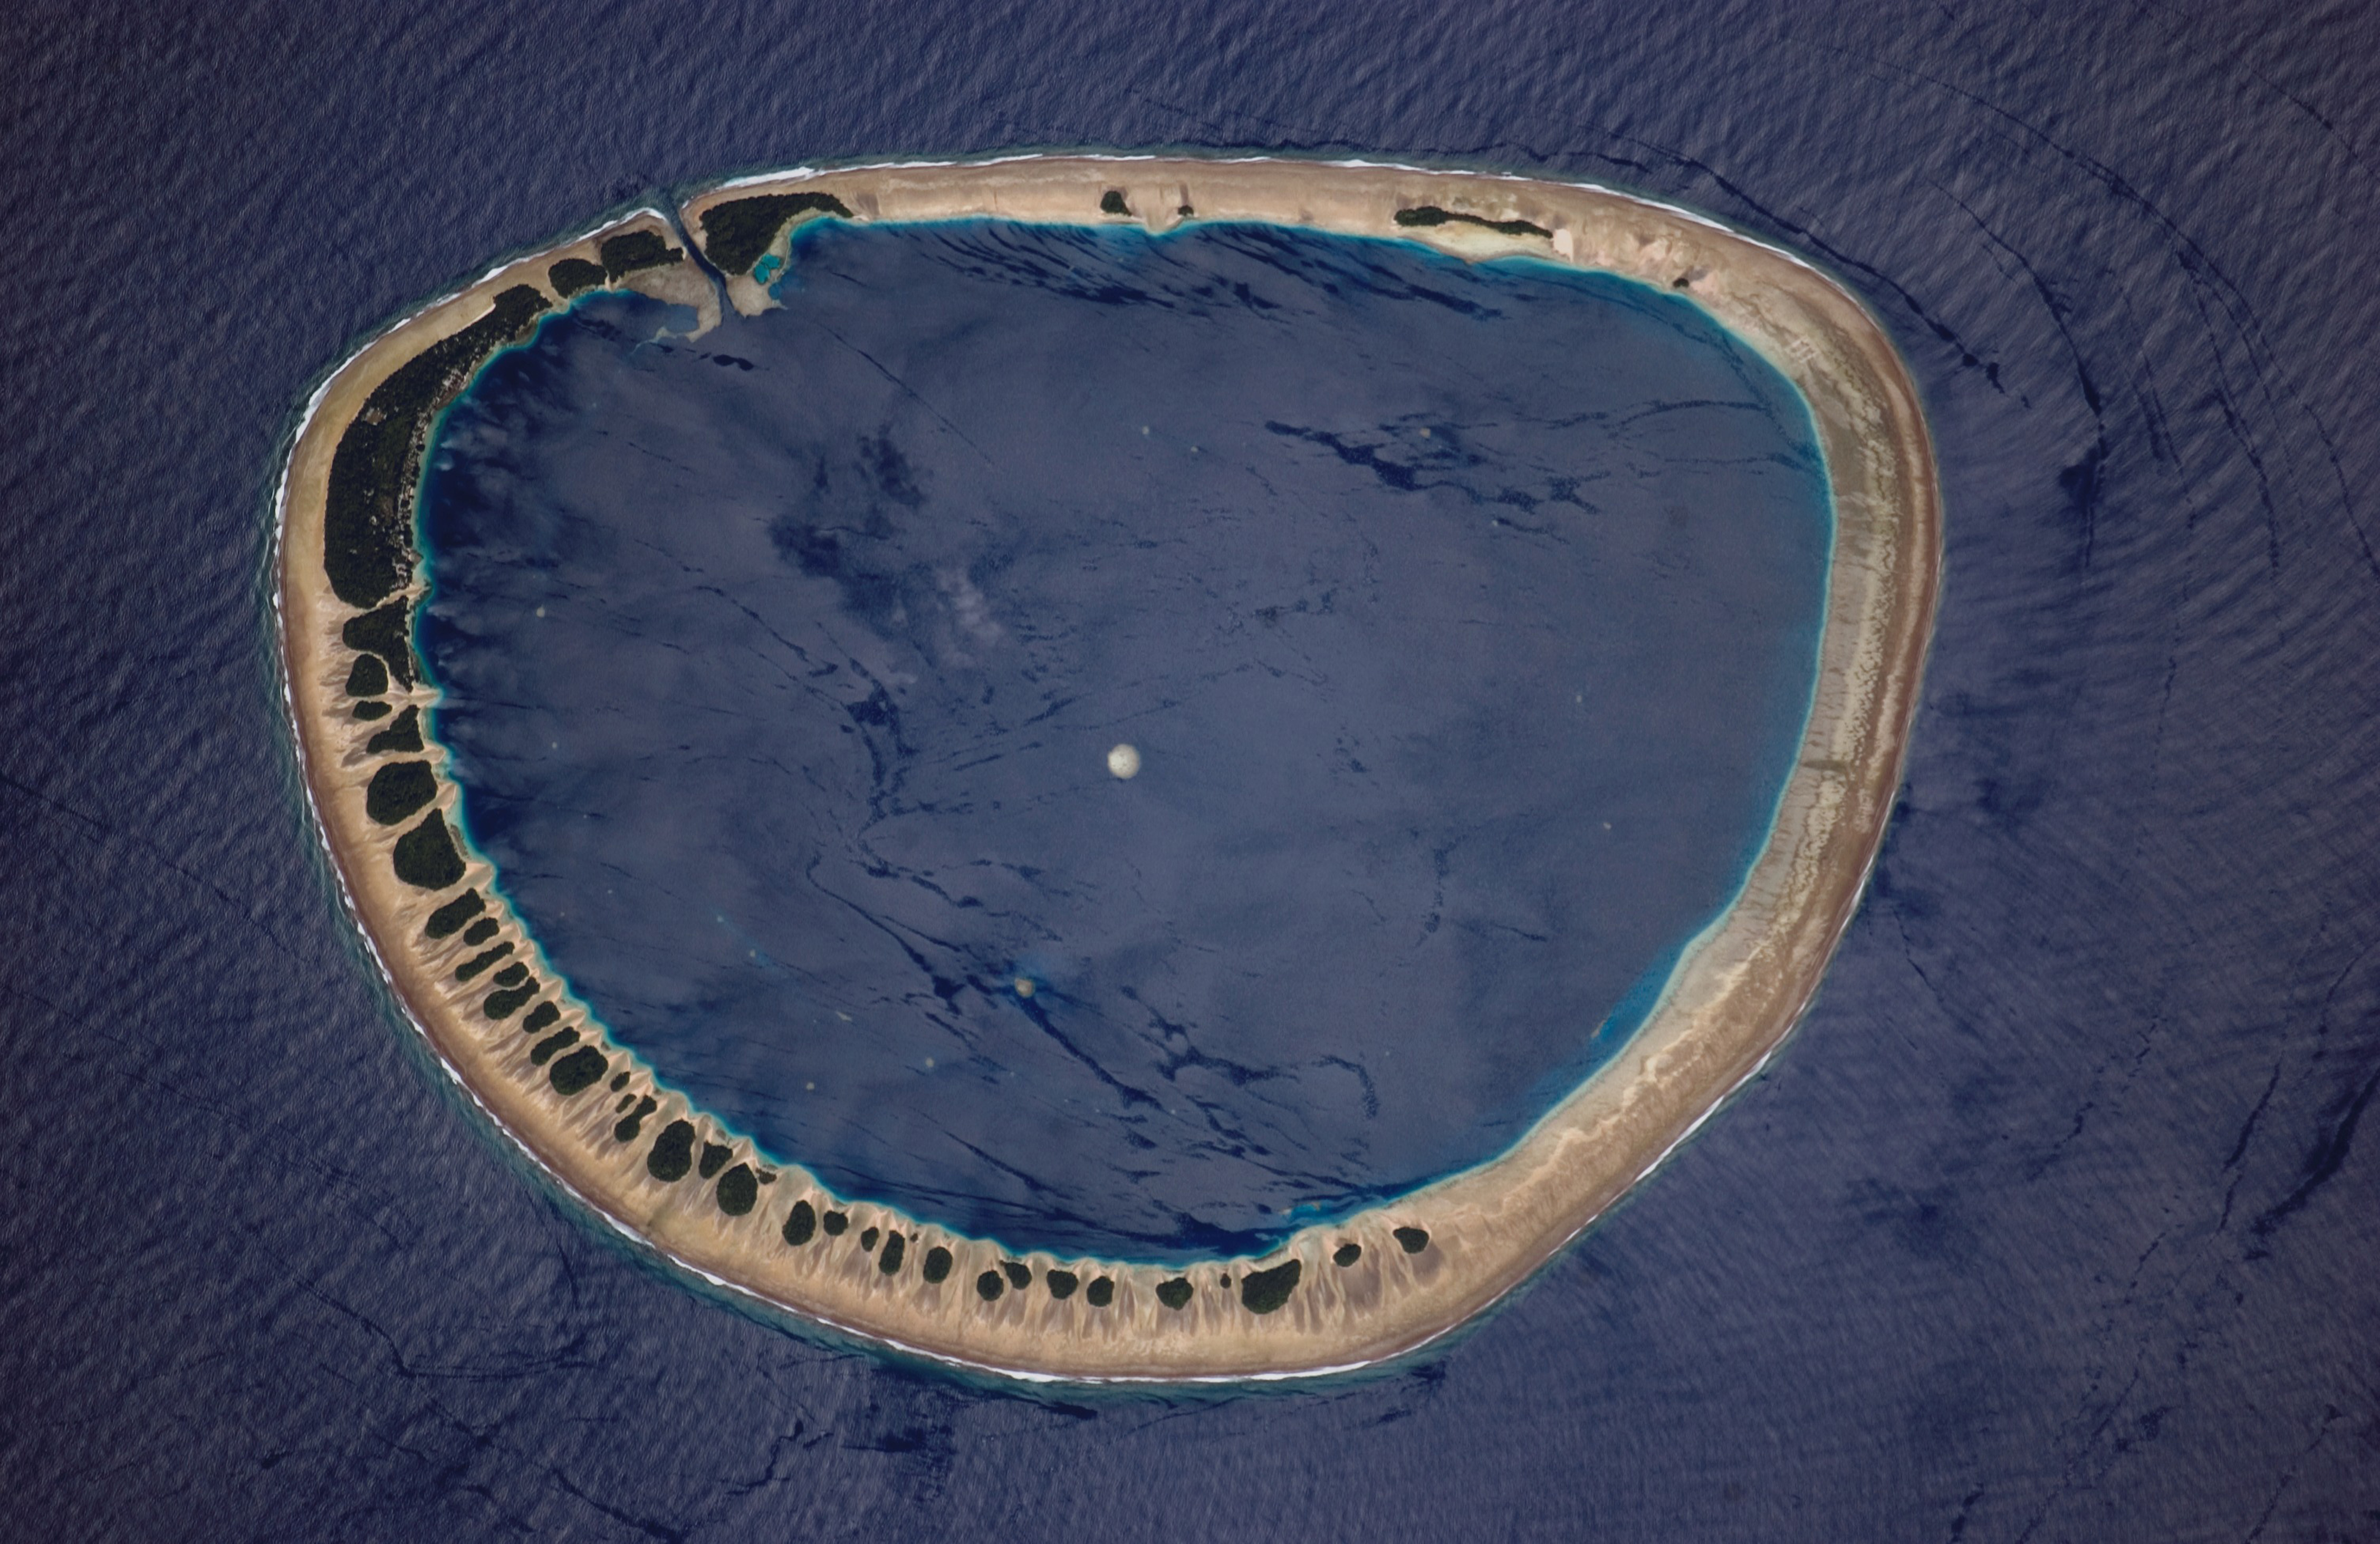 Photograph of Nukuoro Atoll, Federated States of Micronesia.